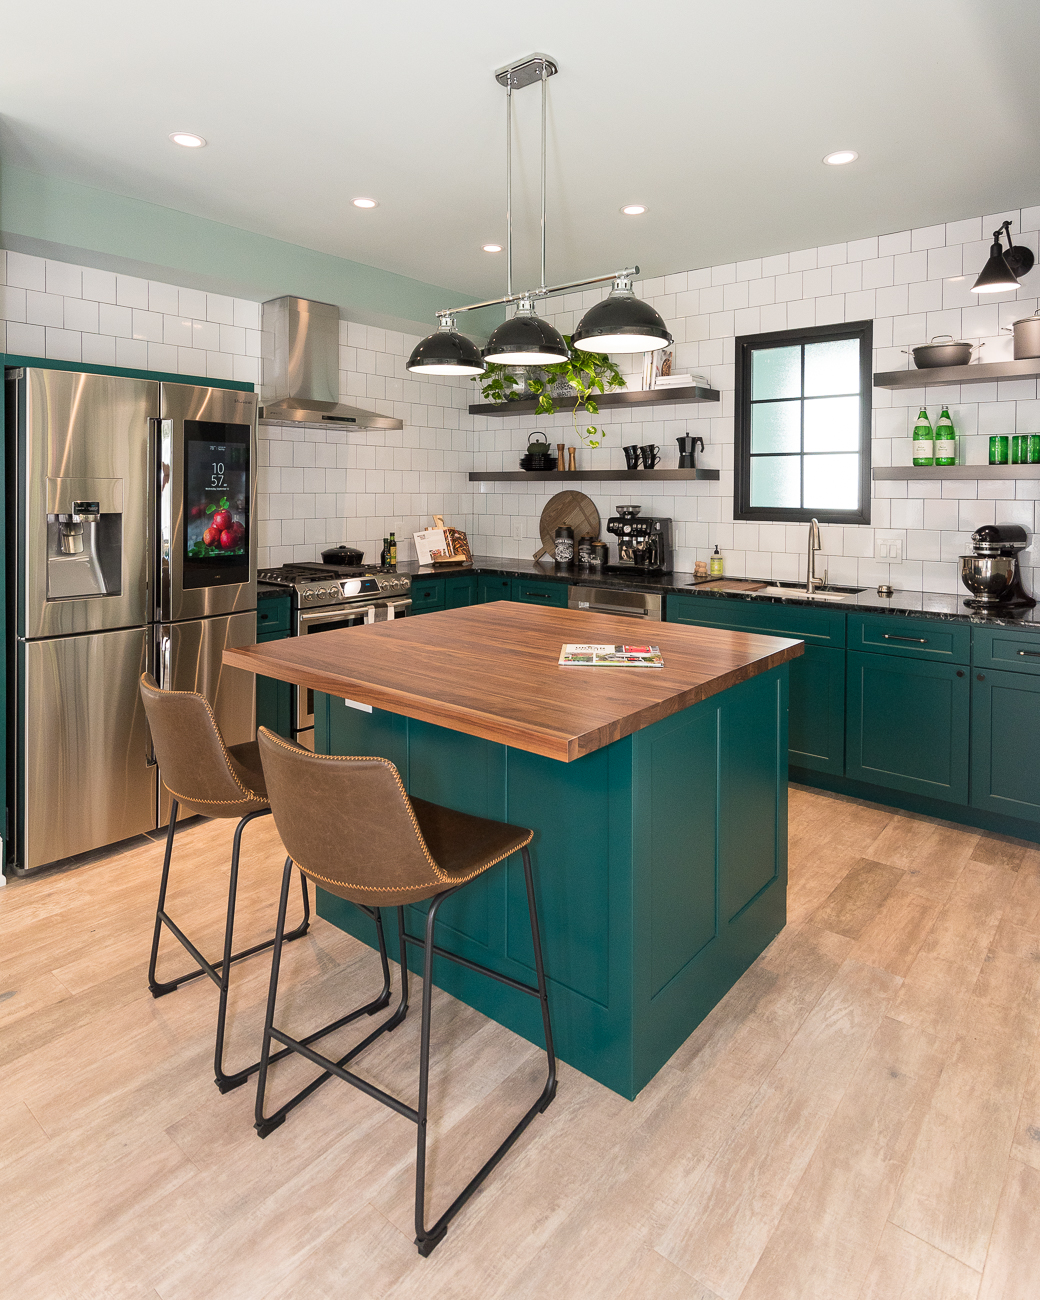 THE 2018 URBAN OASIS HOUSE (Oakley): HGTV renovated an old home in Oakley into an absolute stunner this past year as part of its 2018 Urban Oasis sweepstakes. While the specific history of the home doesn't involve the likes of 19th century wealthy Cincinnatians, it includes some of the boldest paint jobs and most exquisite furnishings we've seen. It's currently awaiting the announcement of its future owner!/ Image: Phil Armstrong, Cincinnati Refined // Published: 11.7.18